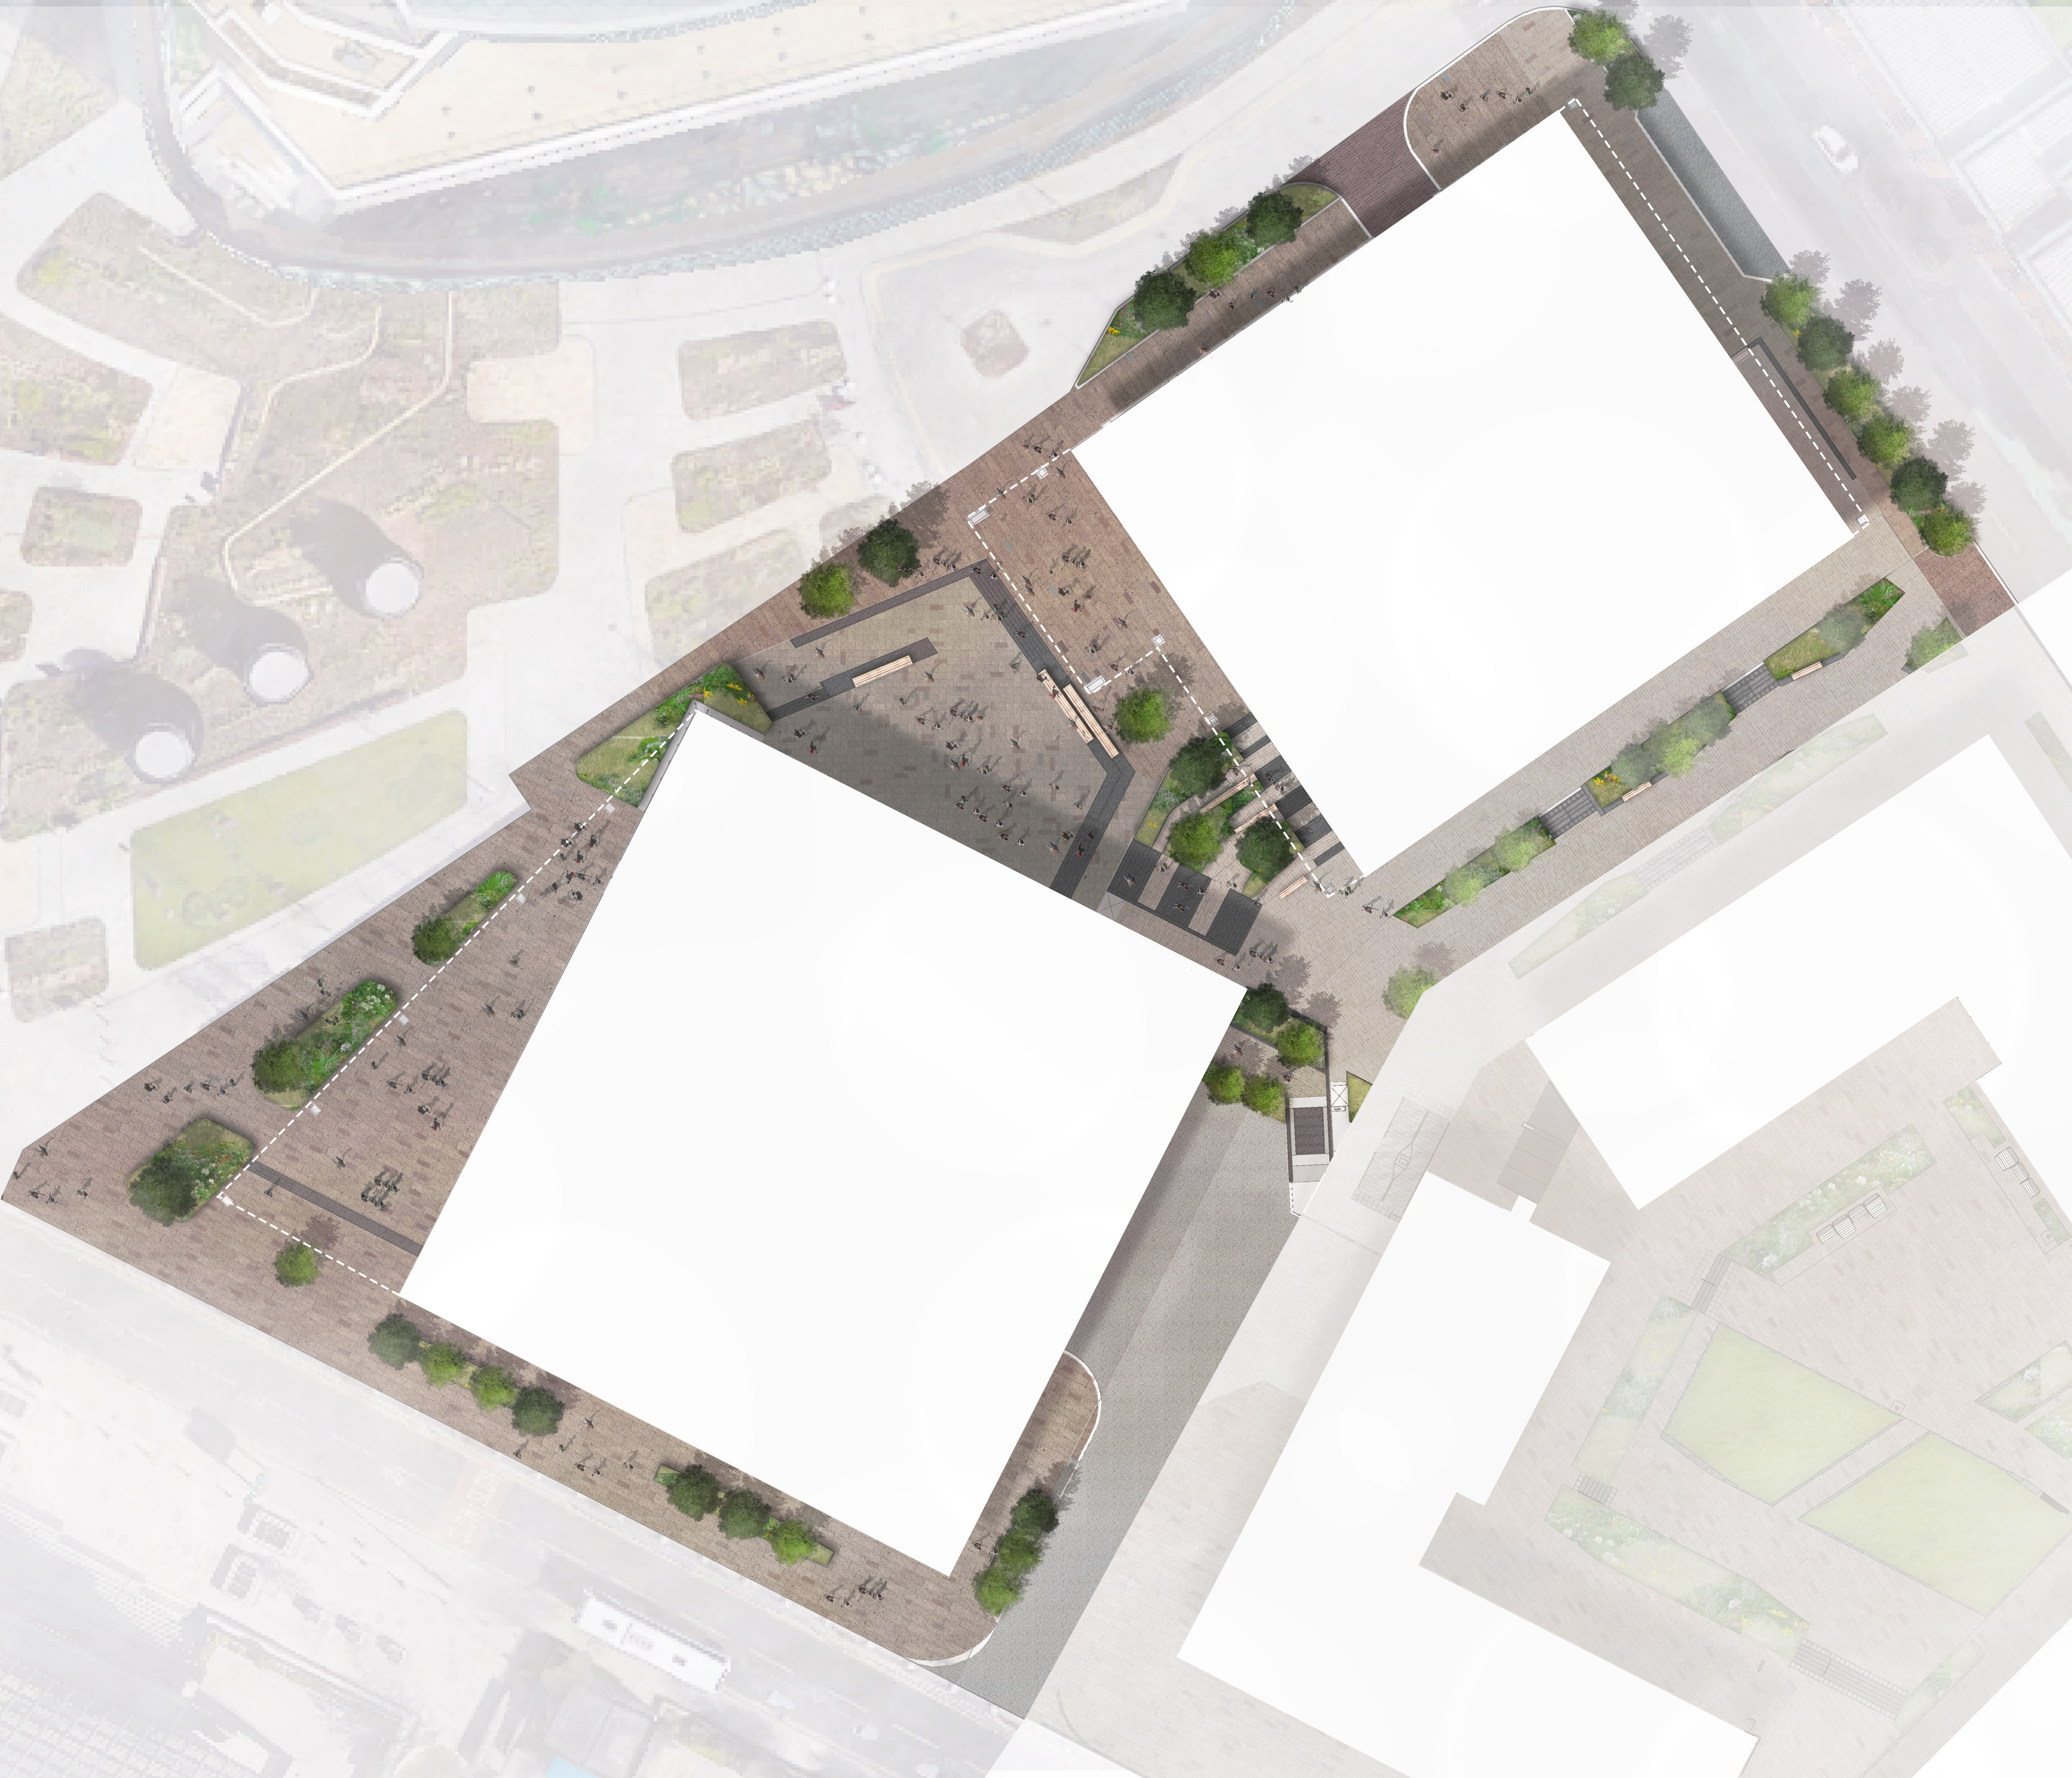 This is still a draft plan - the landscaping plans are still undergoing development. Material colours and other elements of the design are not completely accurate on this draft plan however, it gives a sense of the hard soft split and character of the spaces.